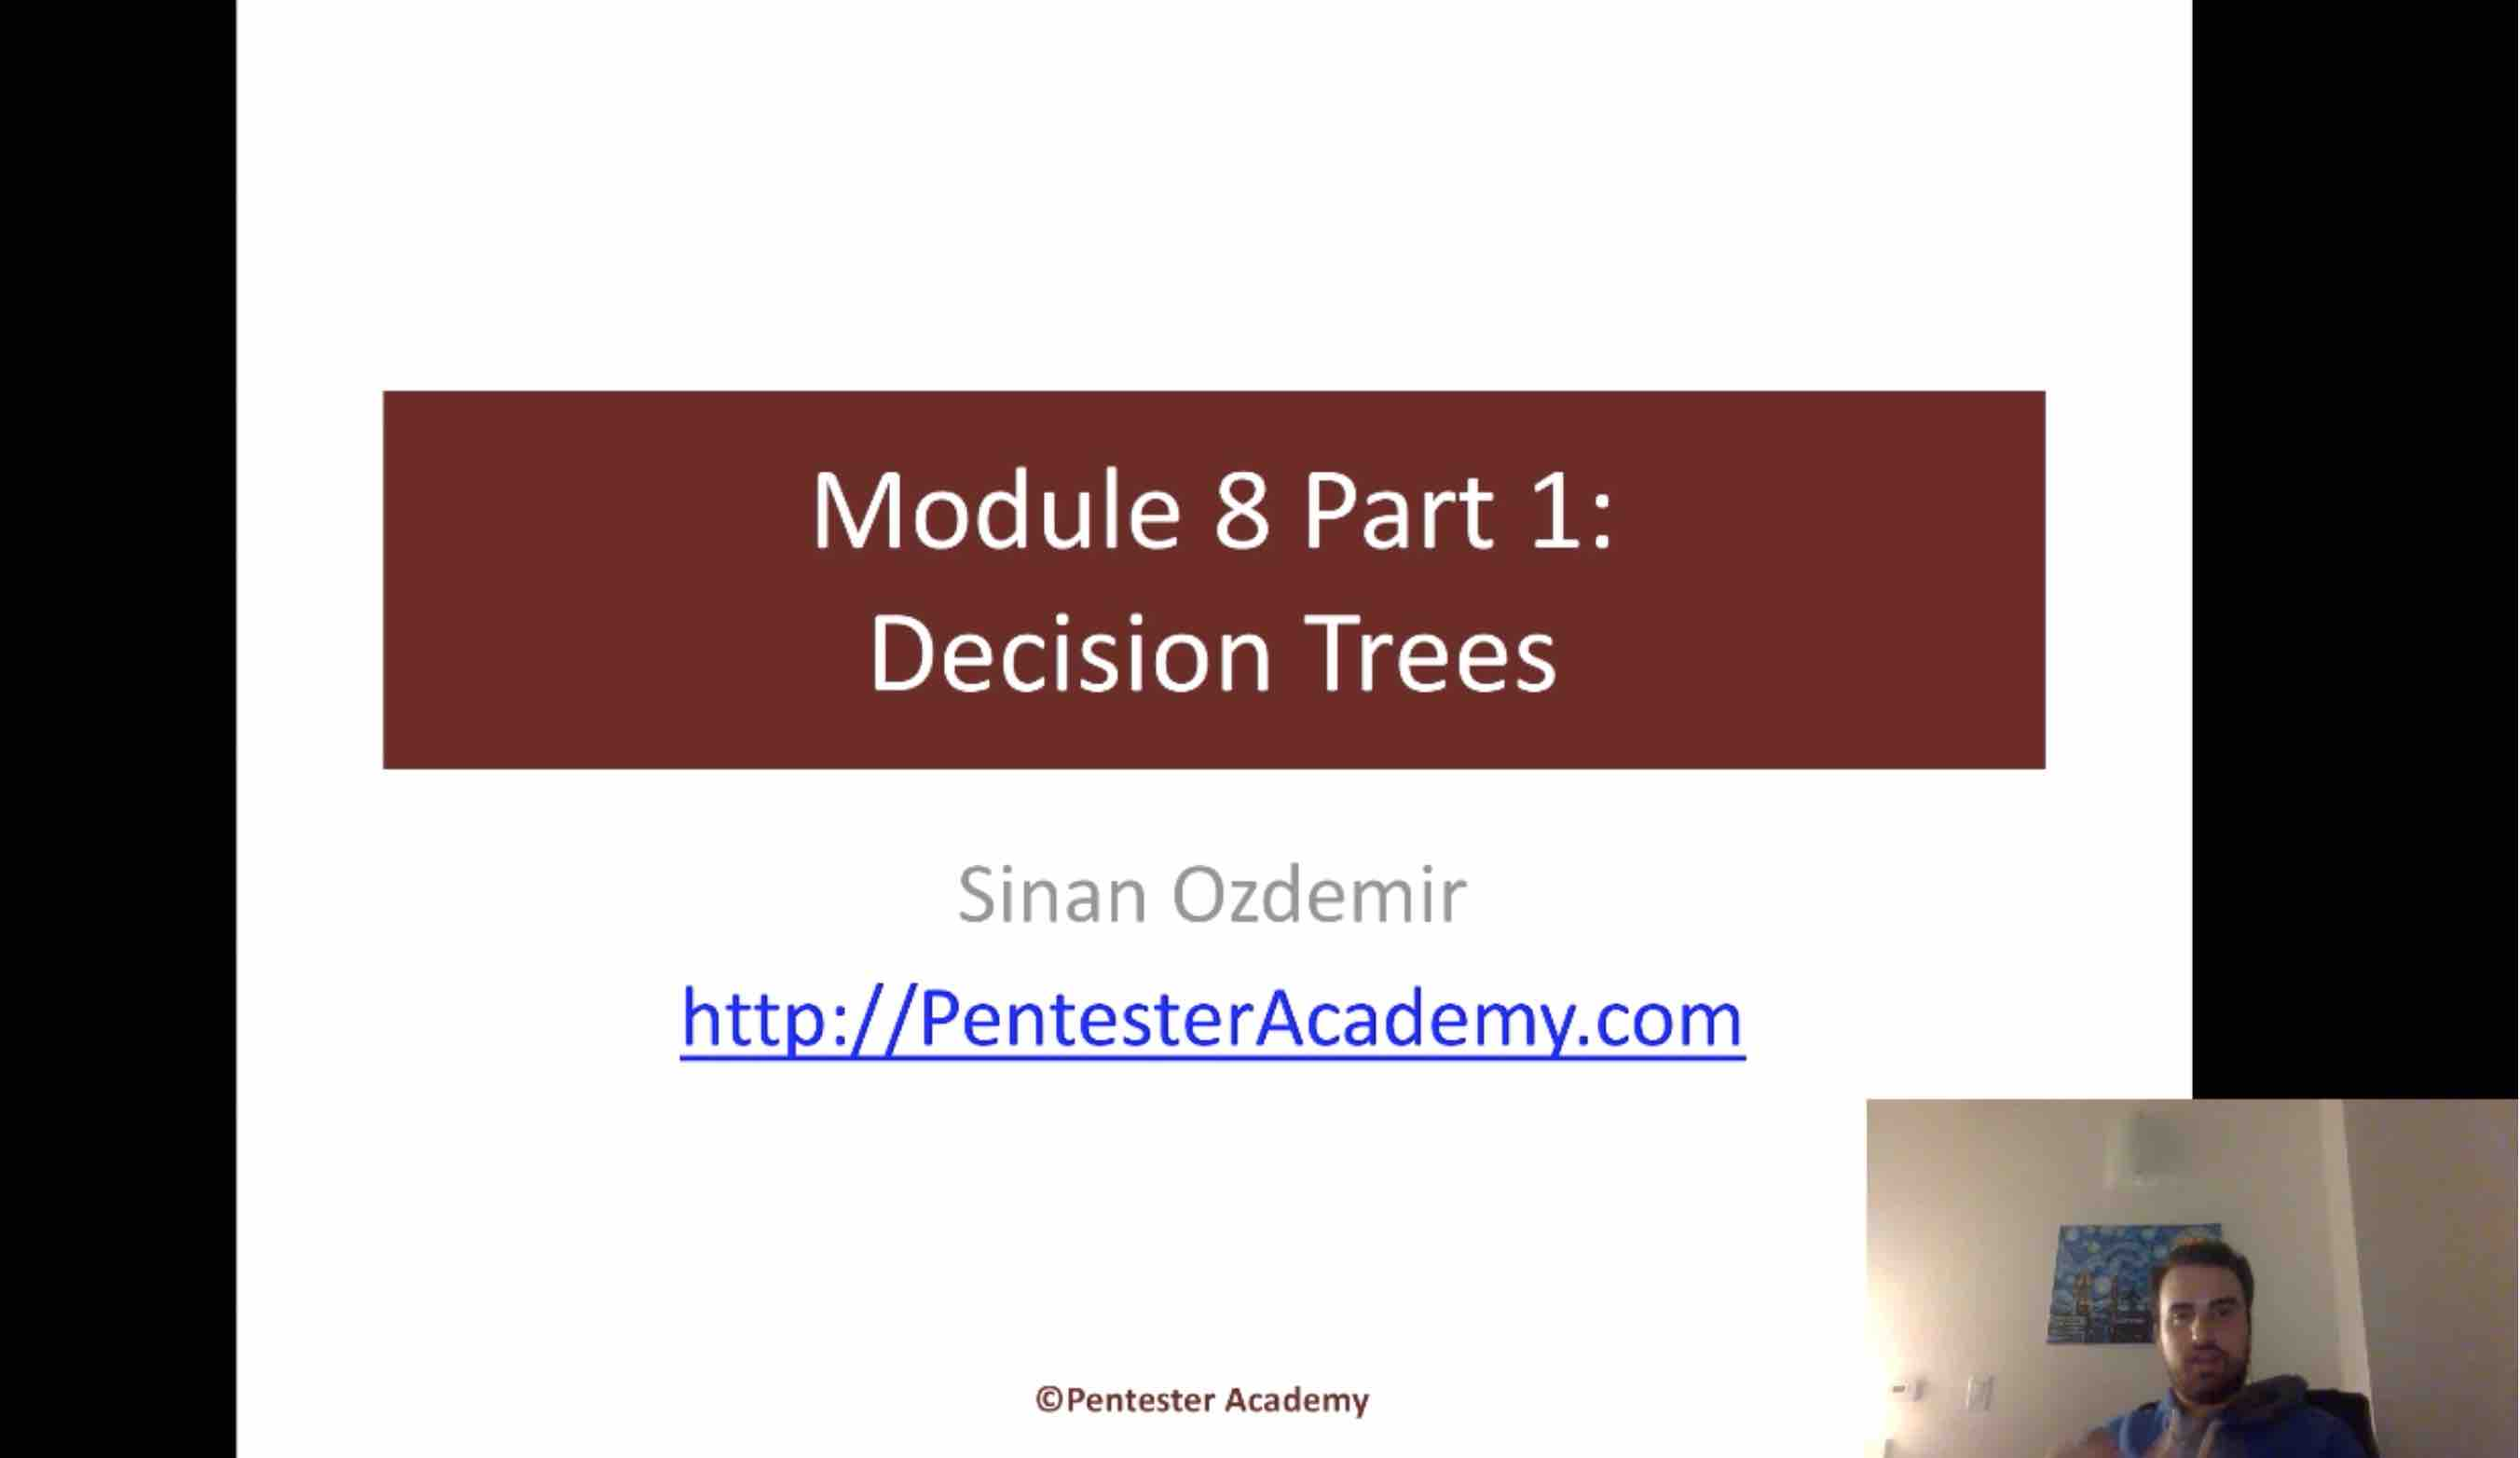 Module 8: Decision Trees Part 1